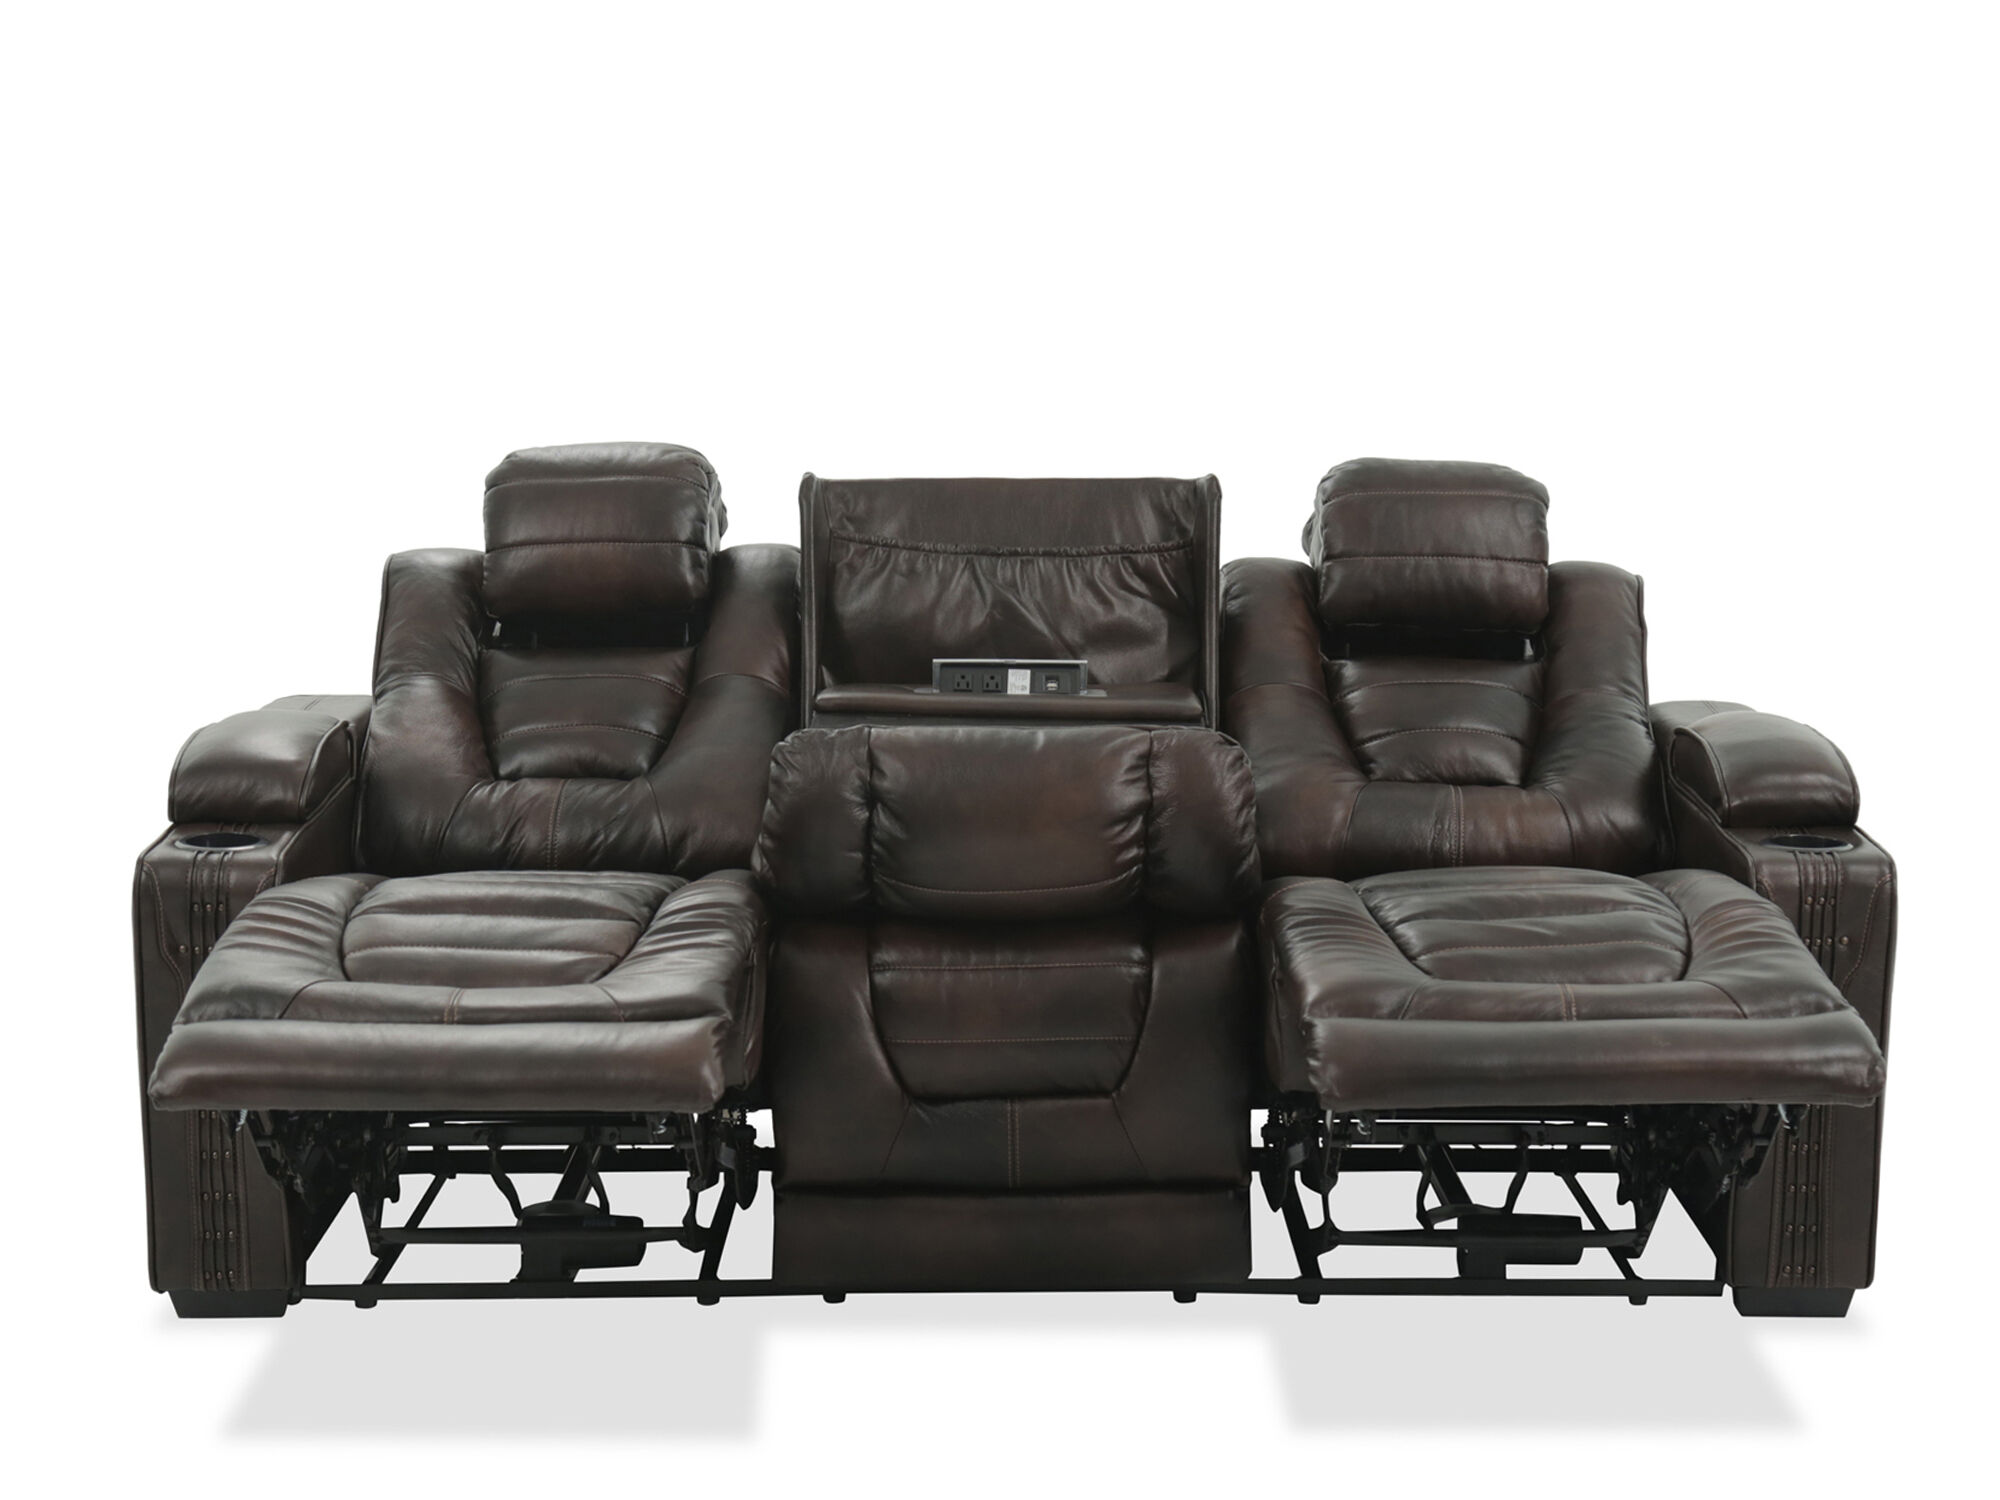 Leather 84 Power Reclining Sofa with Cup Holder in Brown